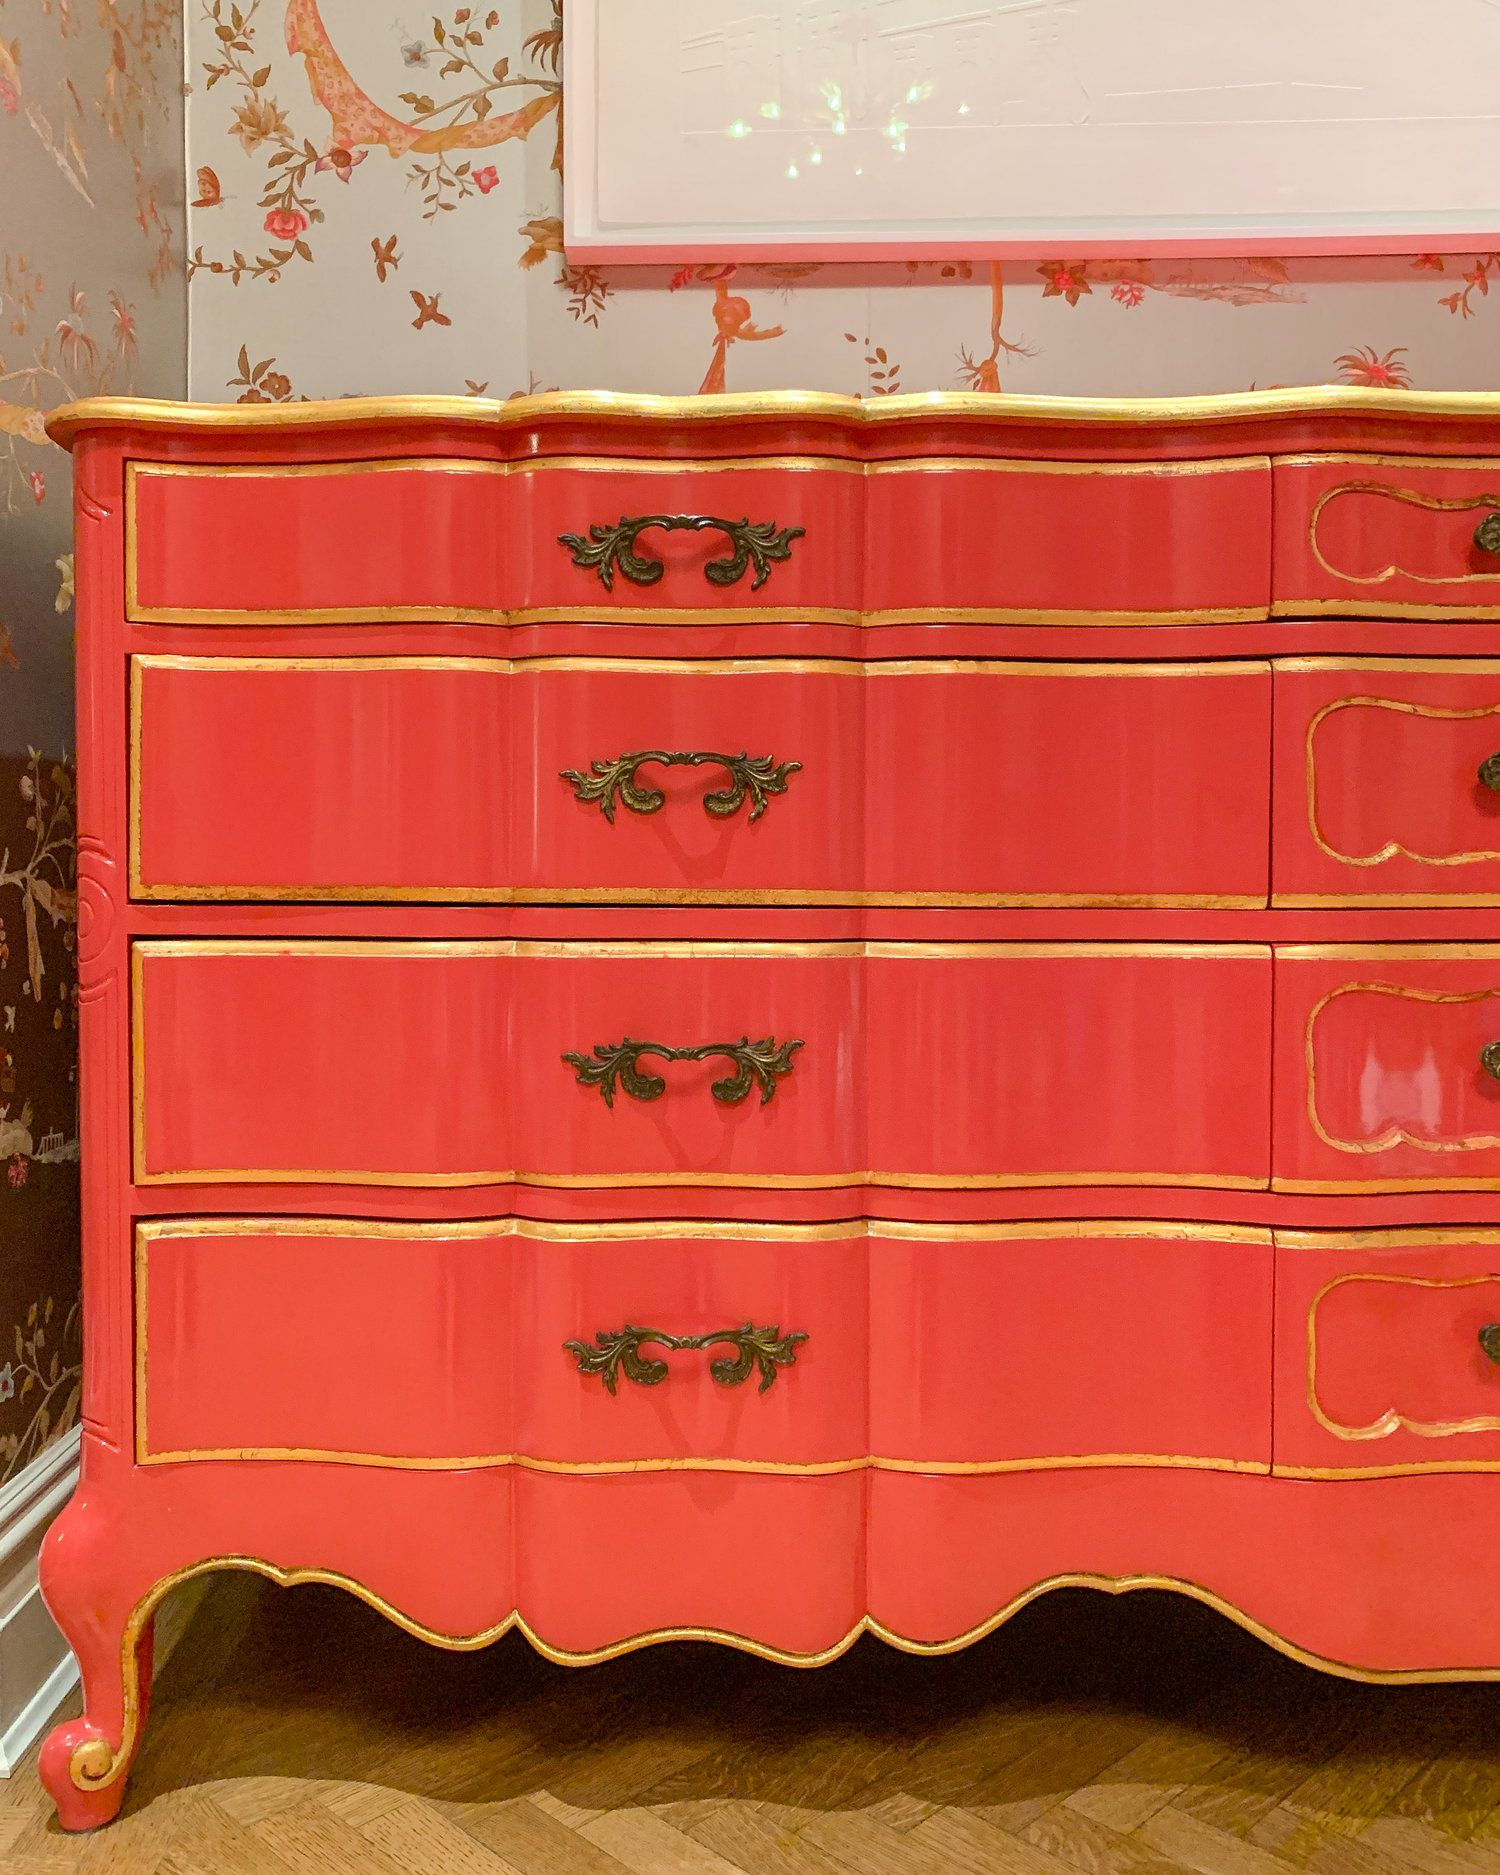 Exceptionnel French Provencial Style Sideboard By Revitaliste. ✨Refinished In A Custom  Coral Lacquer With Gilded Detailing To Accentuate The Beautiful Lines.